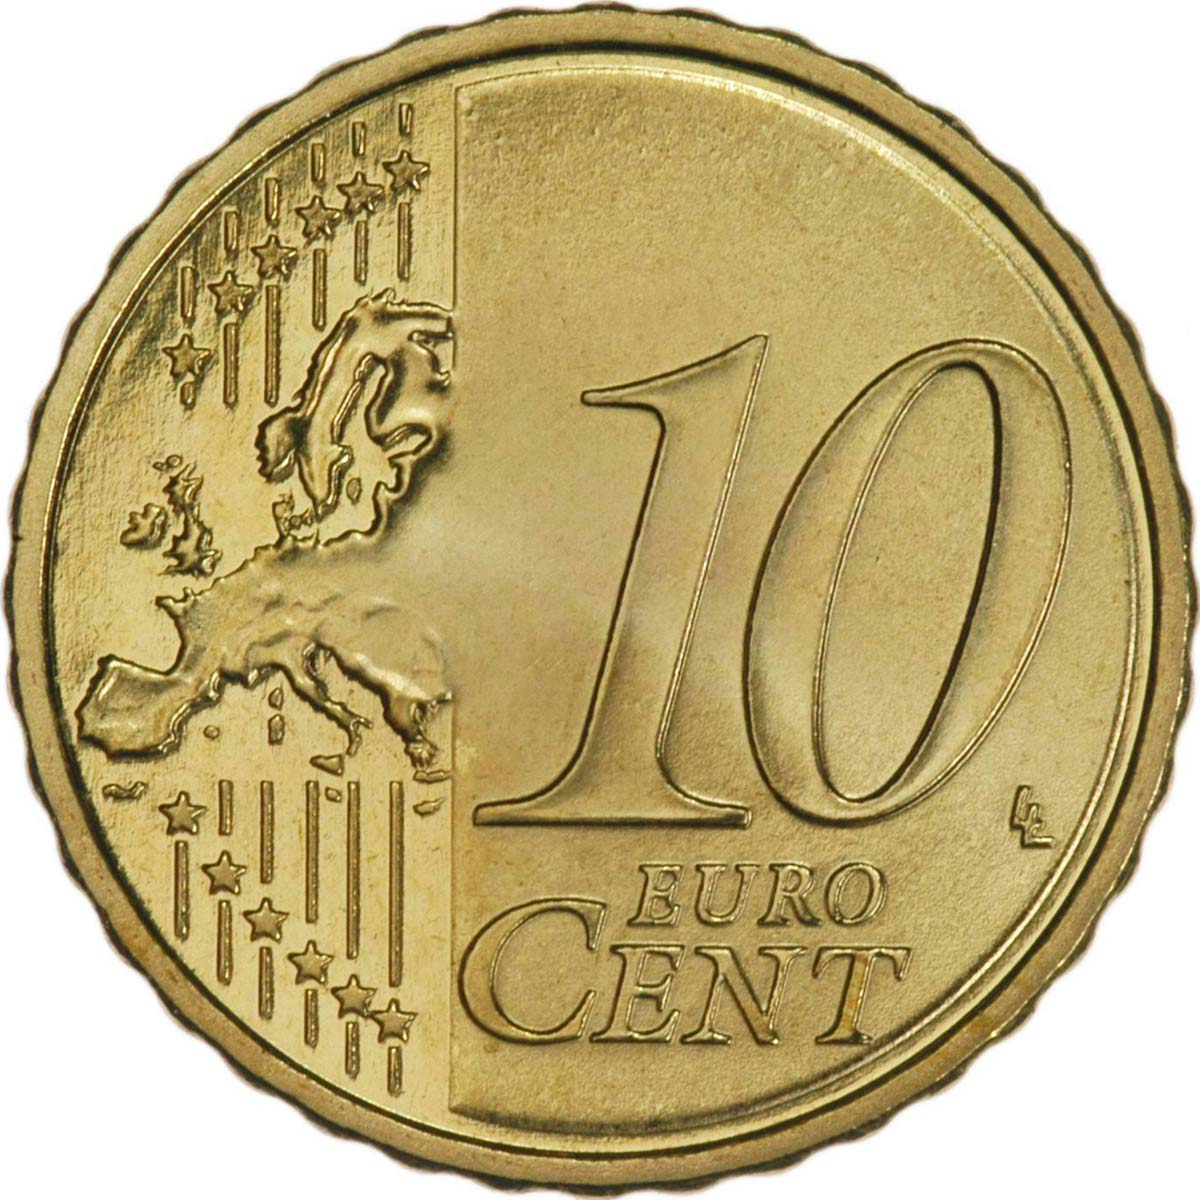 O'Brien Coin Guide: Irish Euro 10c | The Old Currency ...